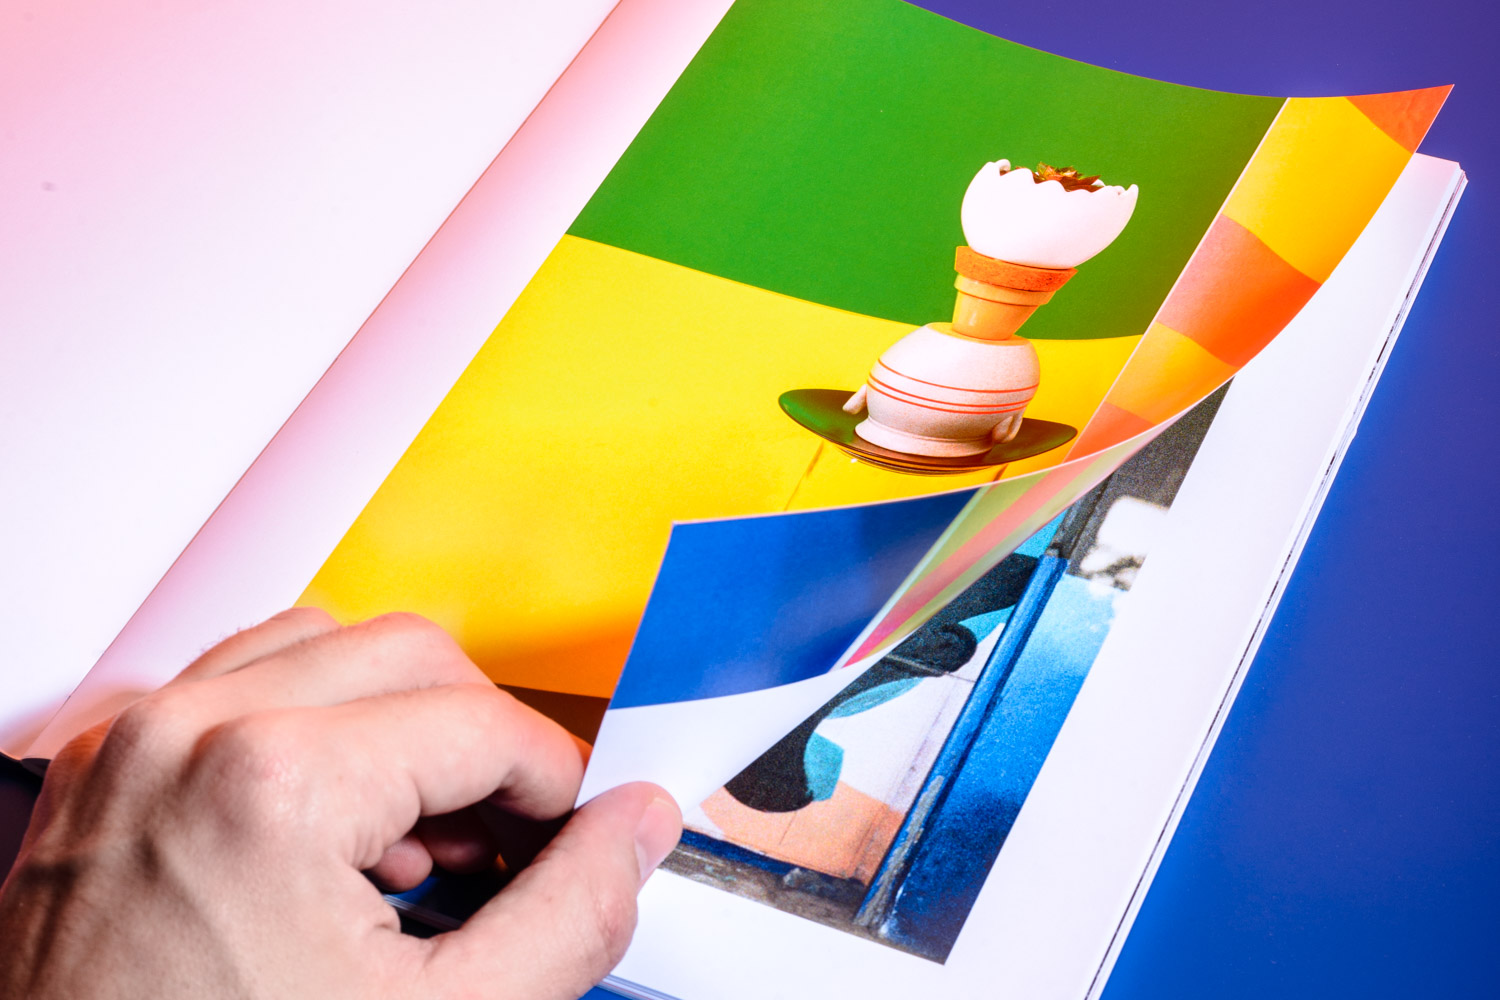 hand flips through the Zine by Stefano Conti